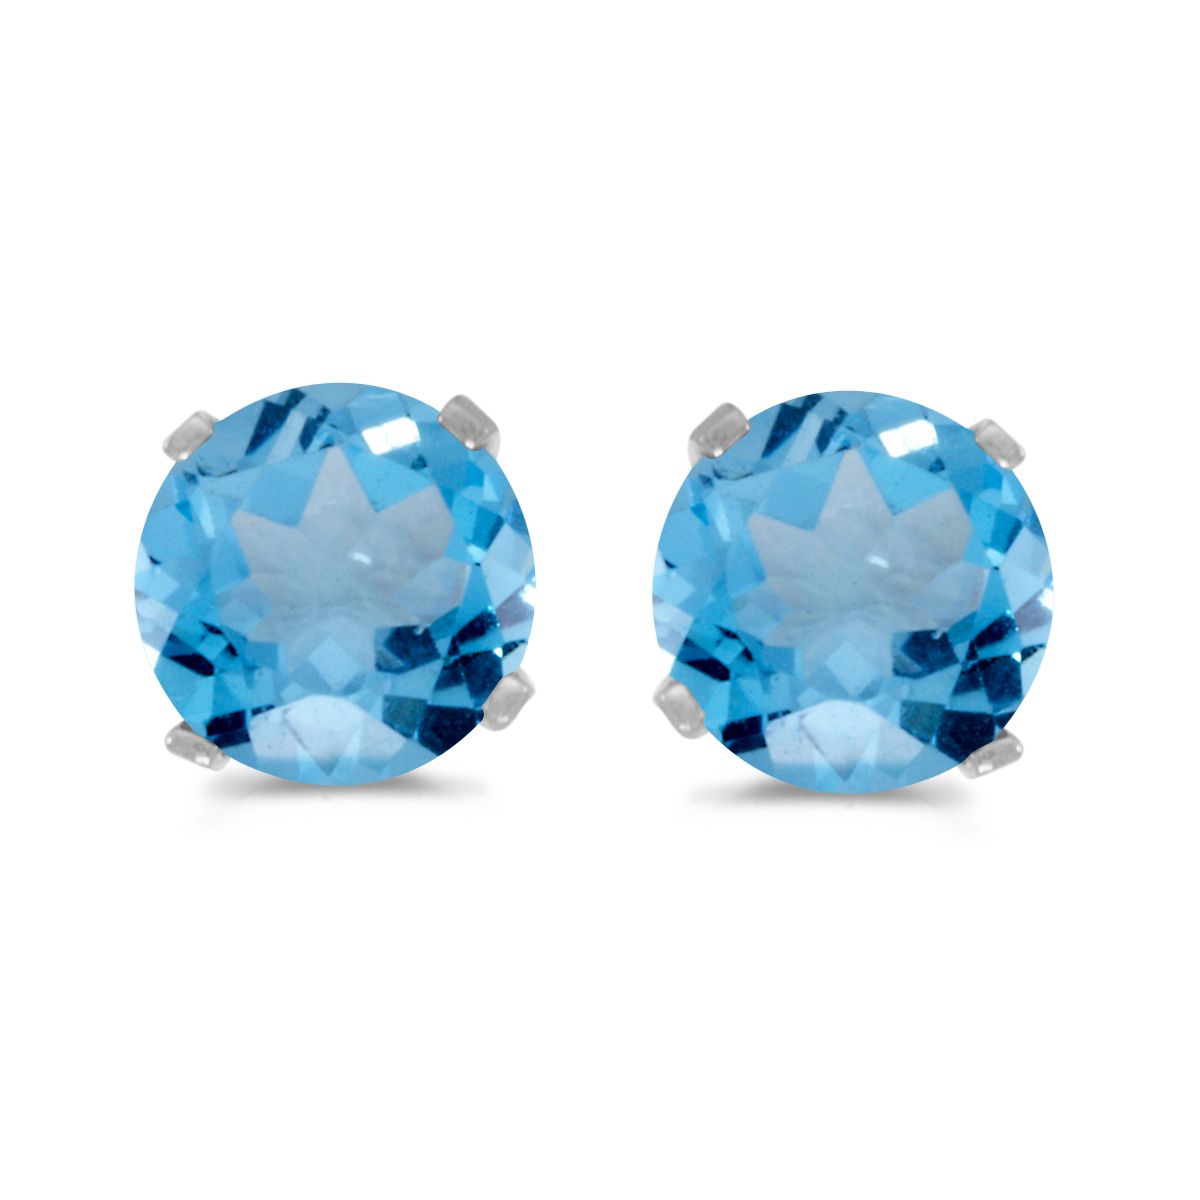 5 mm Natural Round Blue Topaz Stud Earrings Set in 14k White Gold by